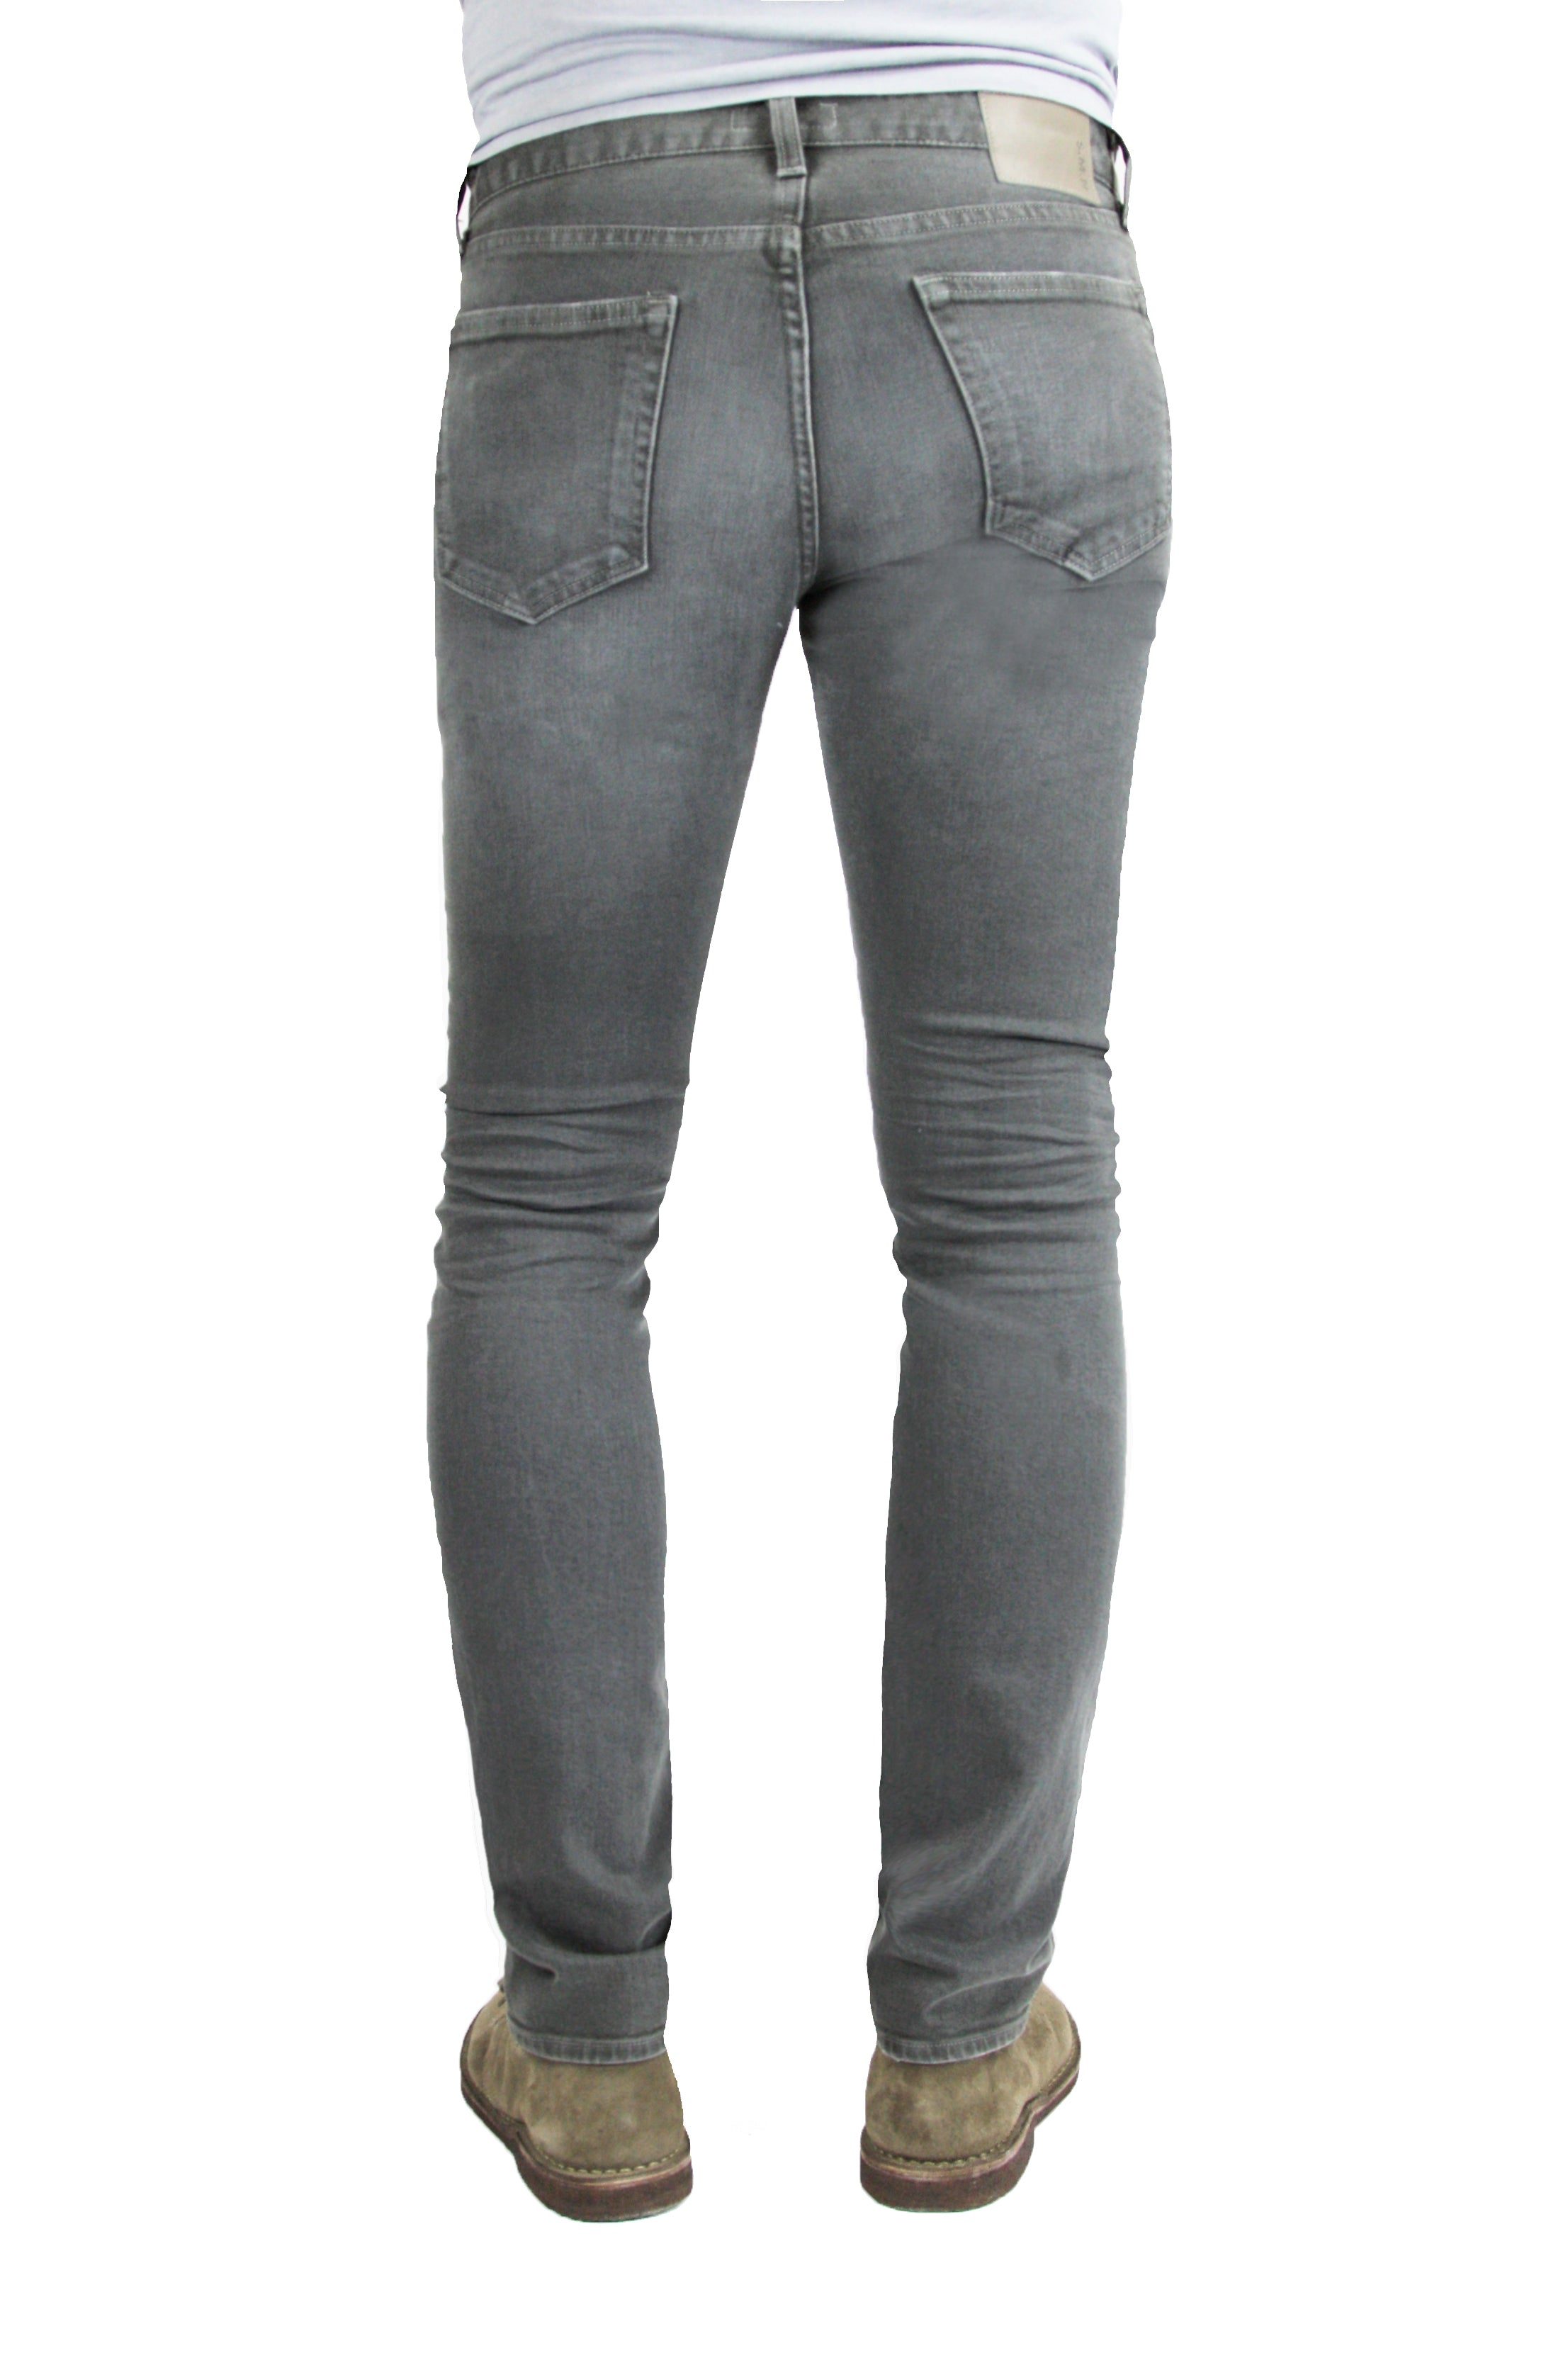 Back of S.M.N Studio's Hunter in Ashton Men's Jeans - Slim Comfort Stretch Denim in grey